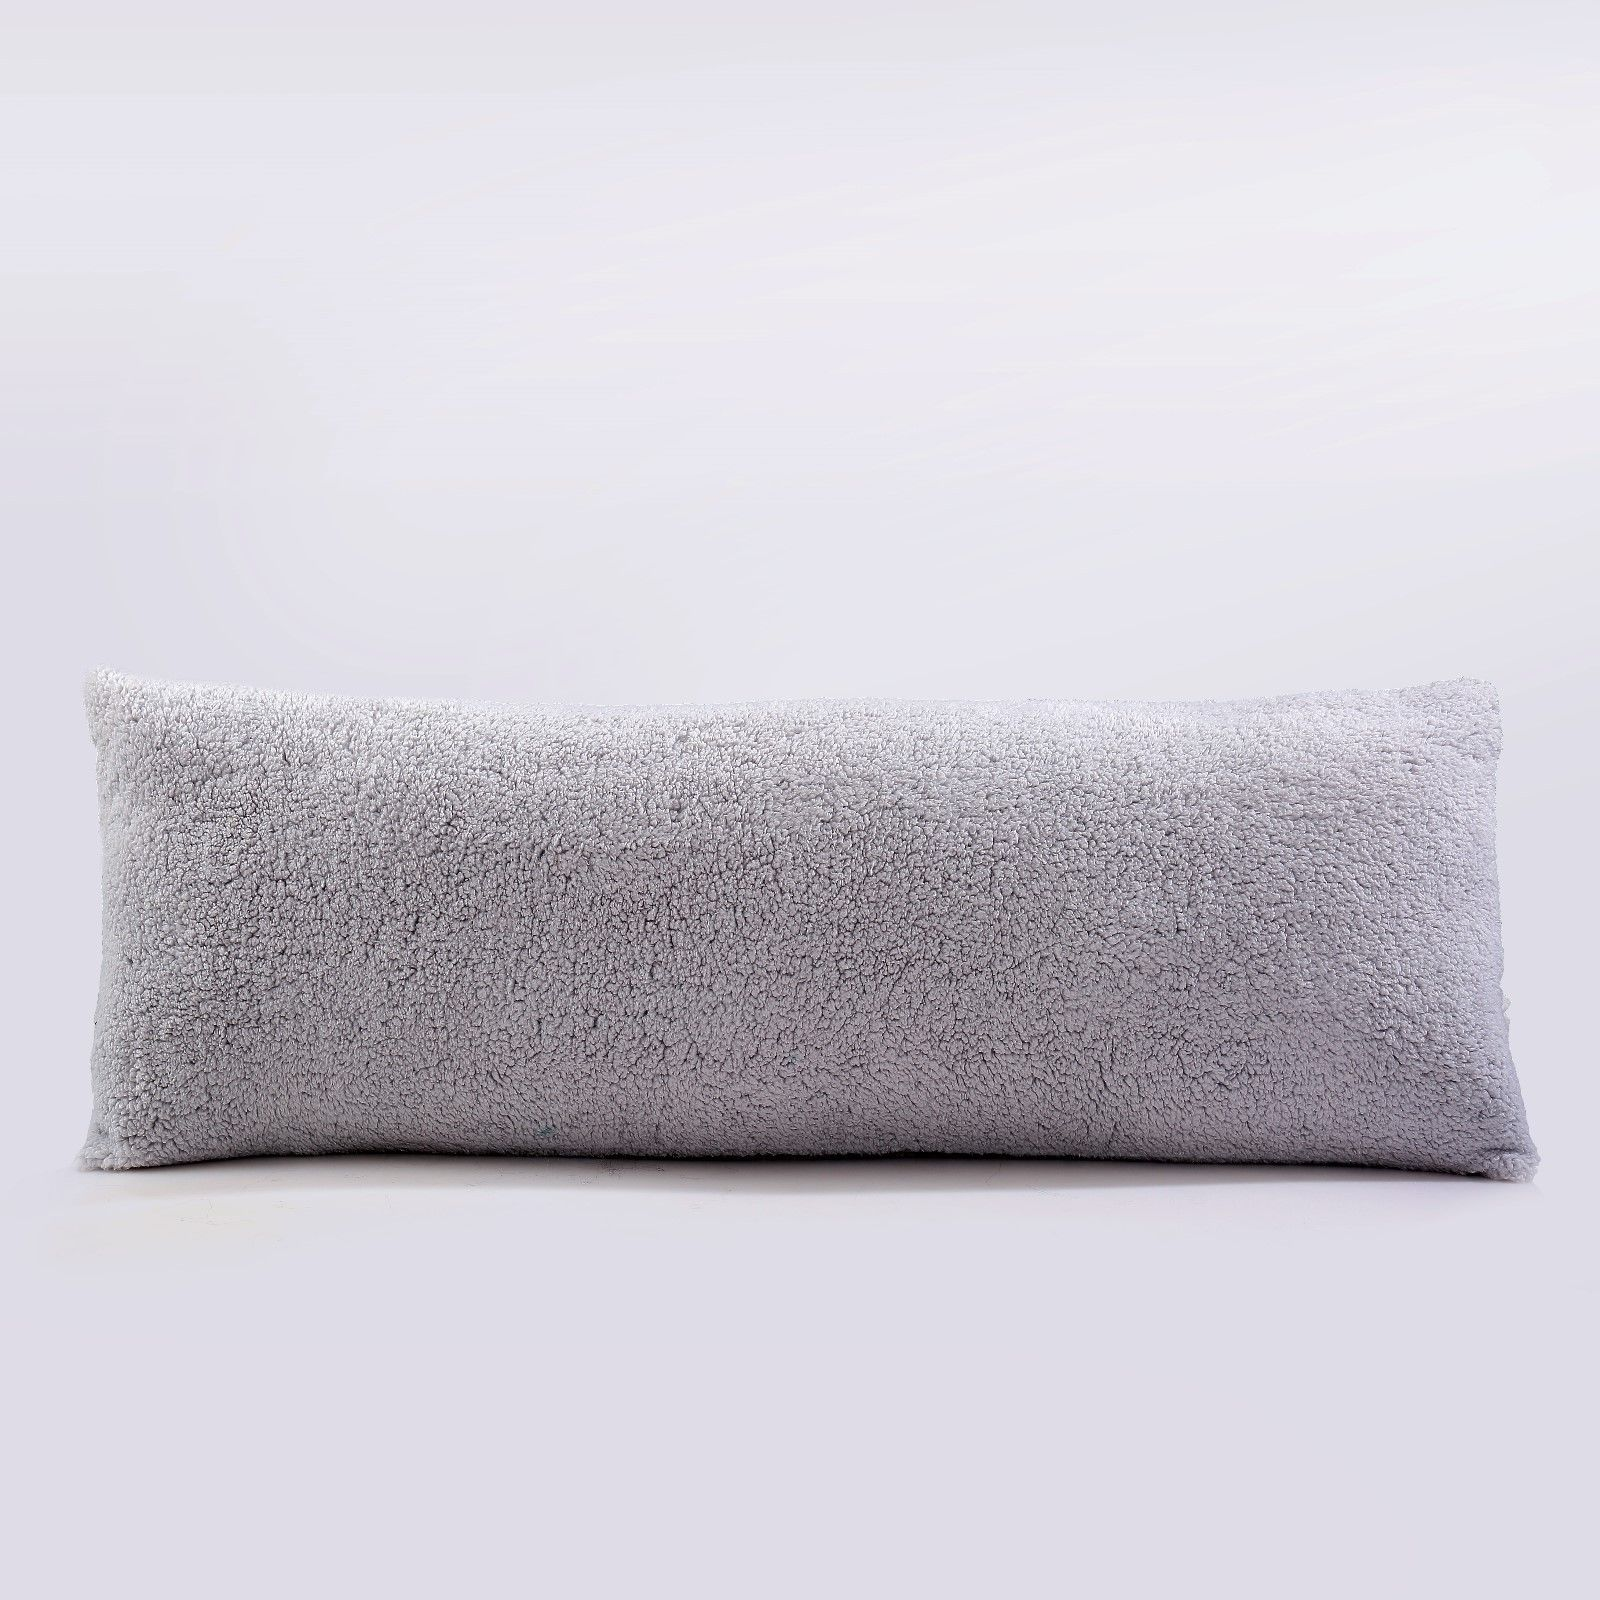 Sherpa Body Pillow Cover.Details About Reafort Ultra Soft Sherpa Body Pillow Cover Case With Zipper Closure 21 X54